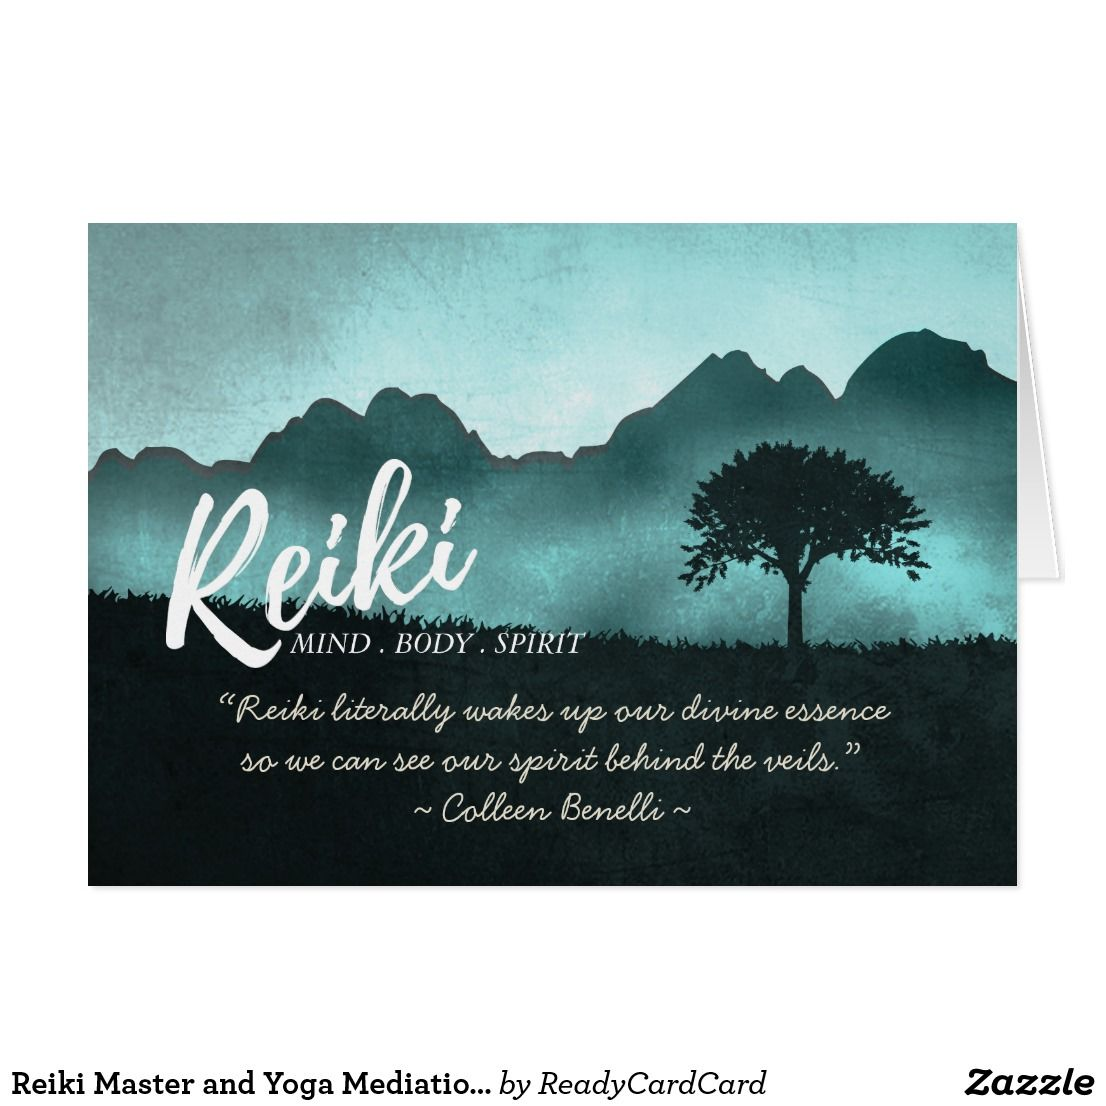 Reiki Master and Yoga Mediation Instructor Quotes Card | Yoga